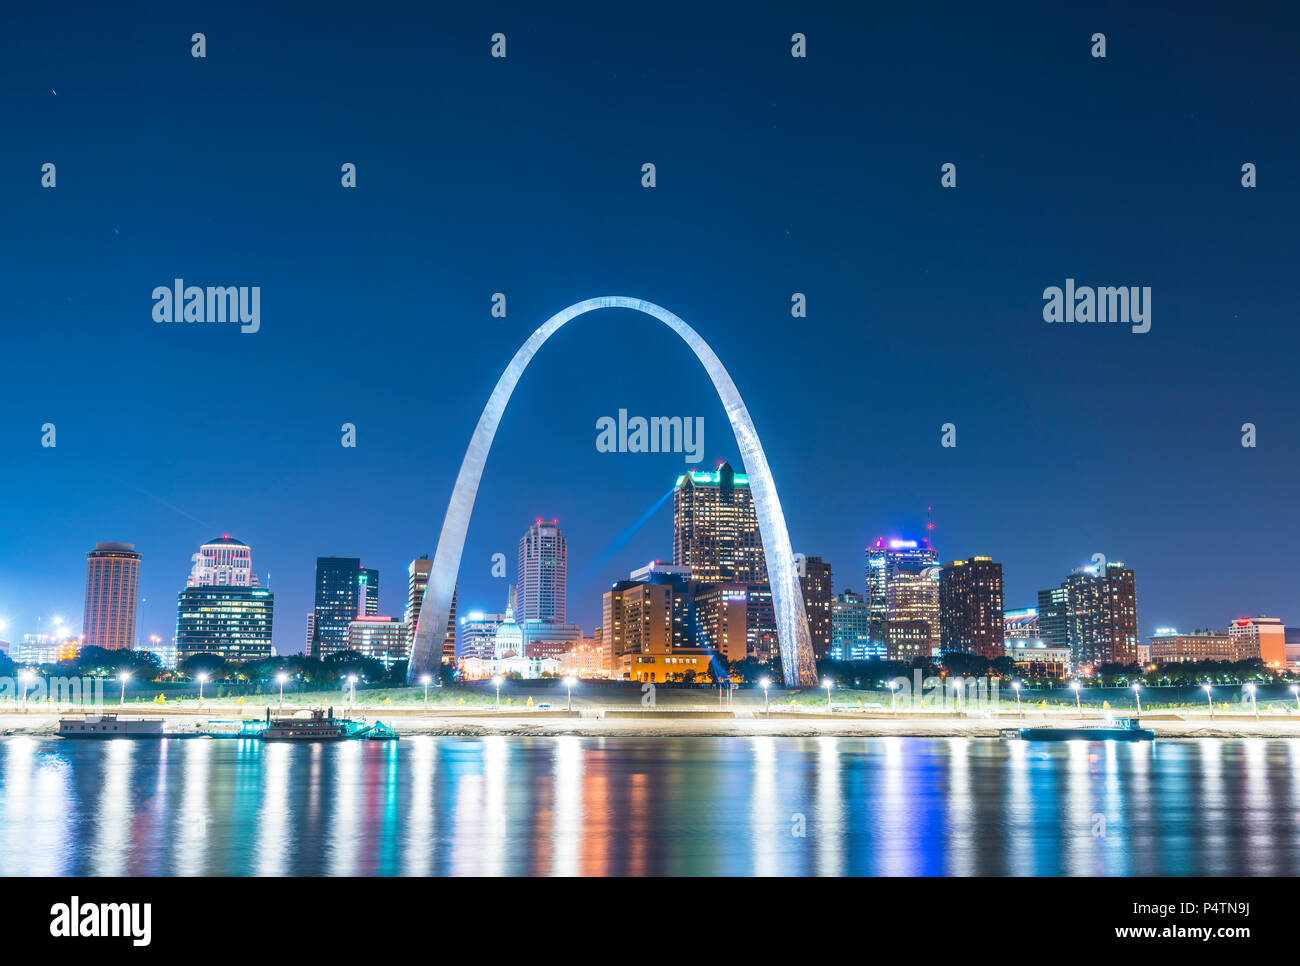 st. louis skyscraper at night with reflection in river,st. louis,missouri,usa. - Stock Image